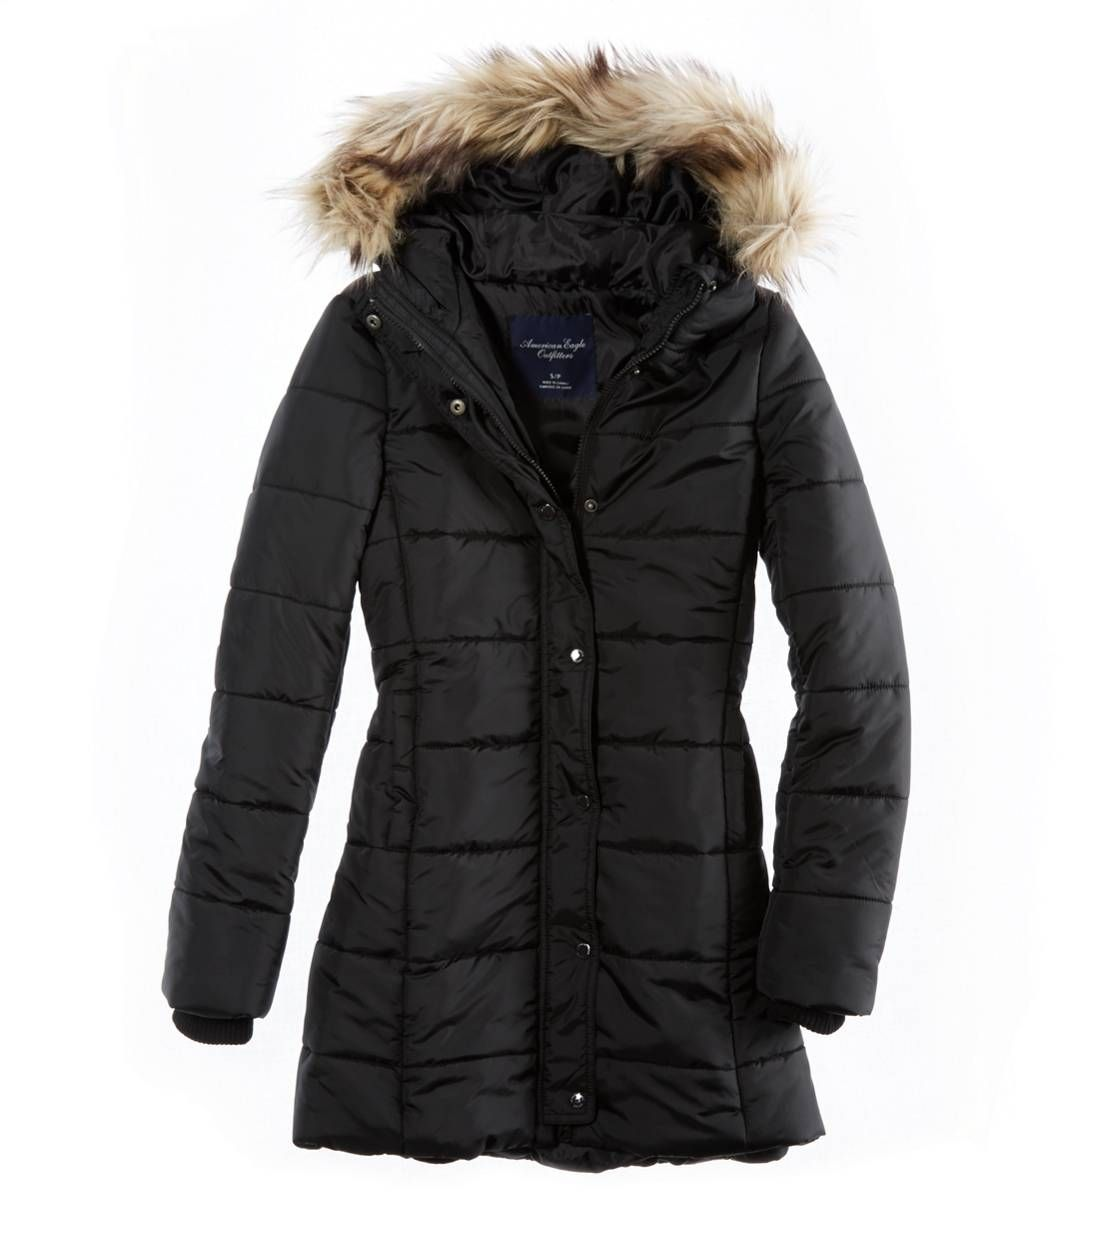 Search Results American Eagle Outfitters Puffer Jacket Long Black Puffer Coat Long Black Puffer Coat [ 1253 x 1119 Pixel ]